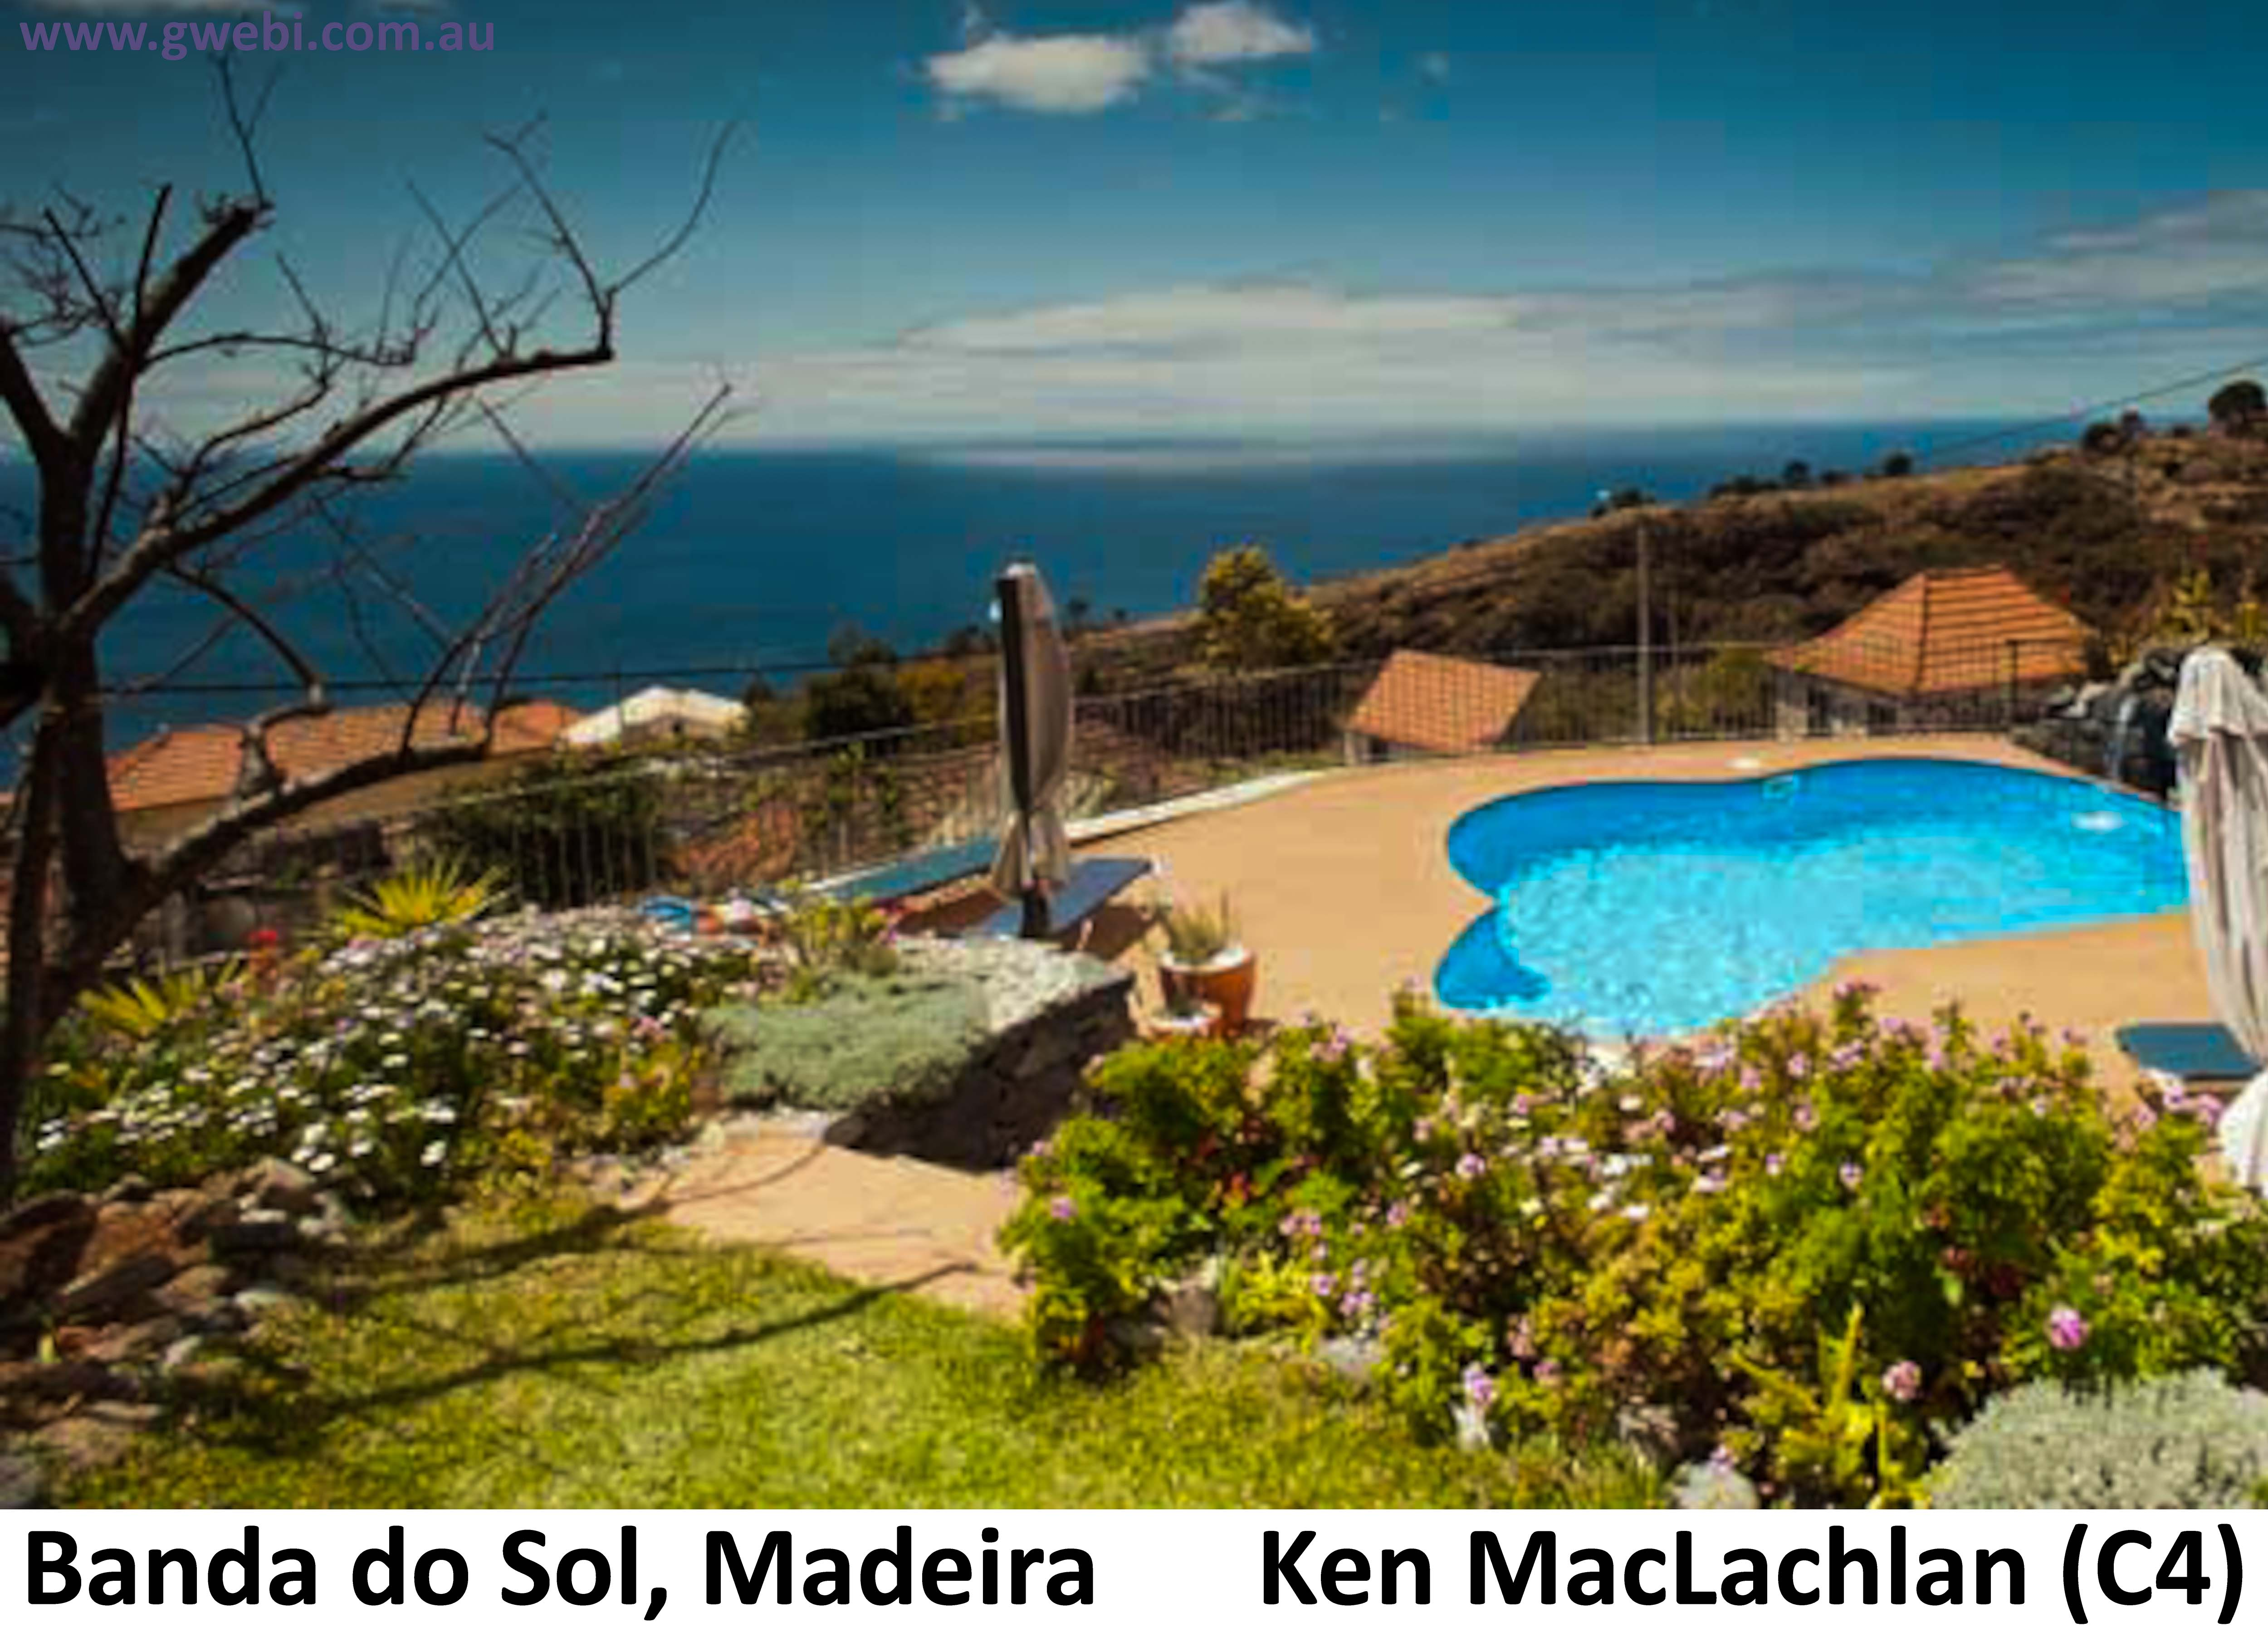 View beyond swimming pool at Banada do Sol in Madeira, Portugal owned by Ken MacLachlan Gwebi College of Agriculture